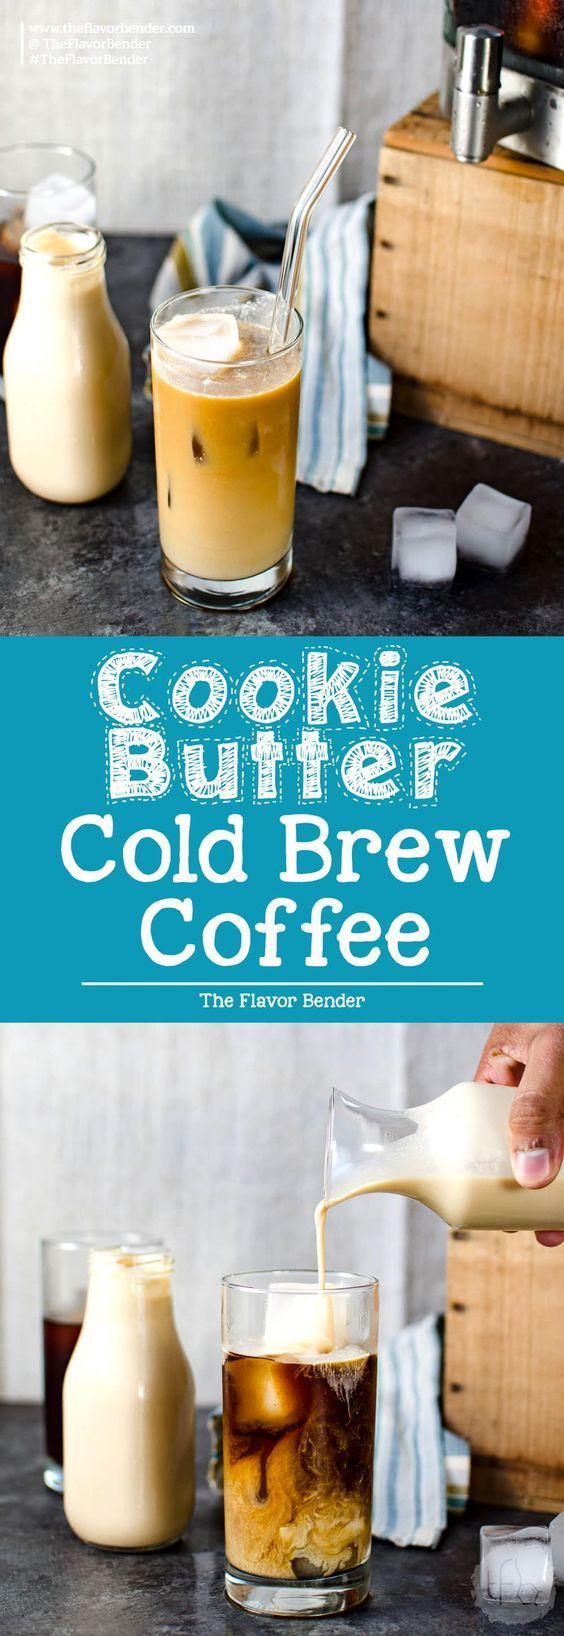 Cookie Butter Cold Brew Coffee - The Flavor Bender